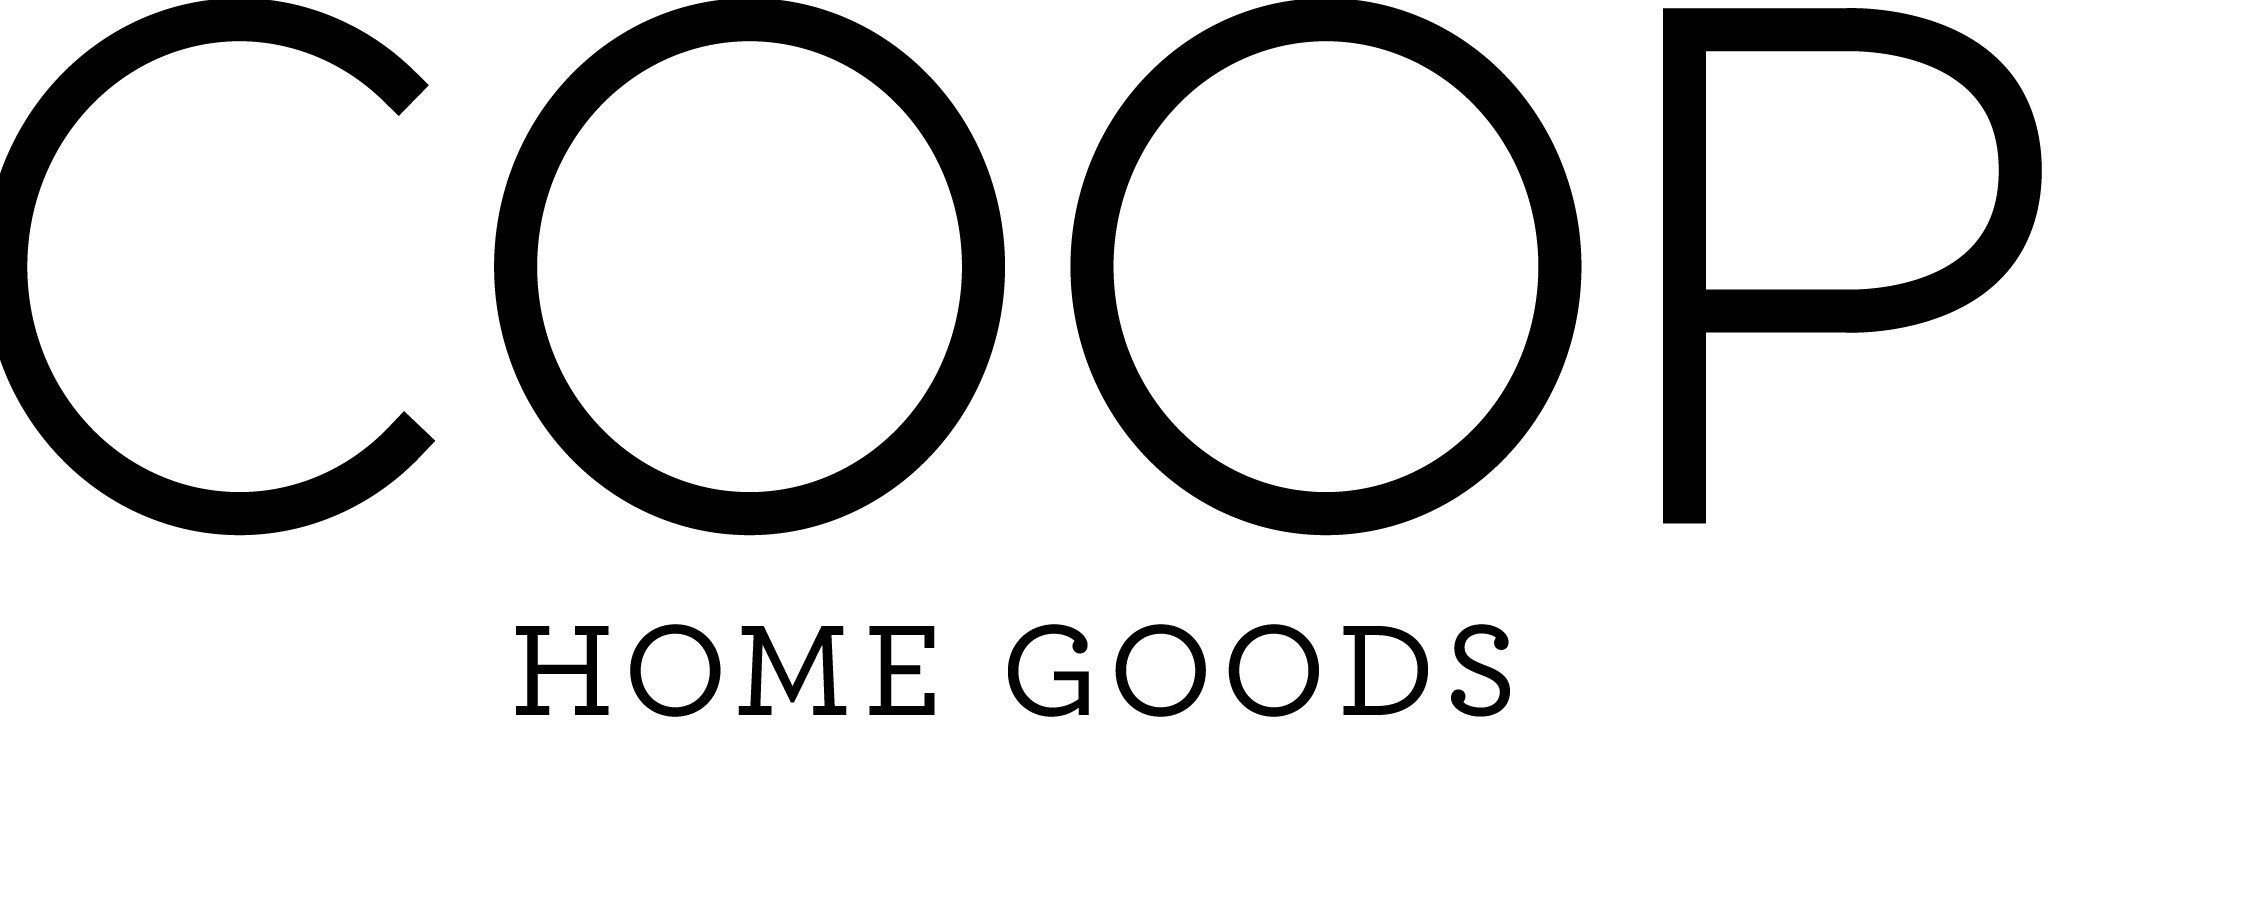 Coop Home Goods Discount & Coupon codes